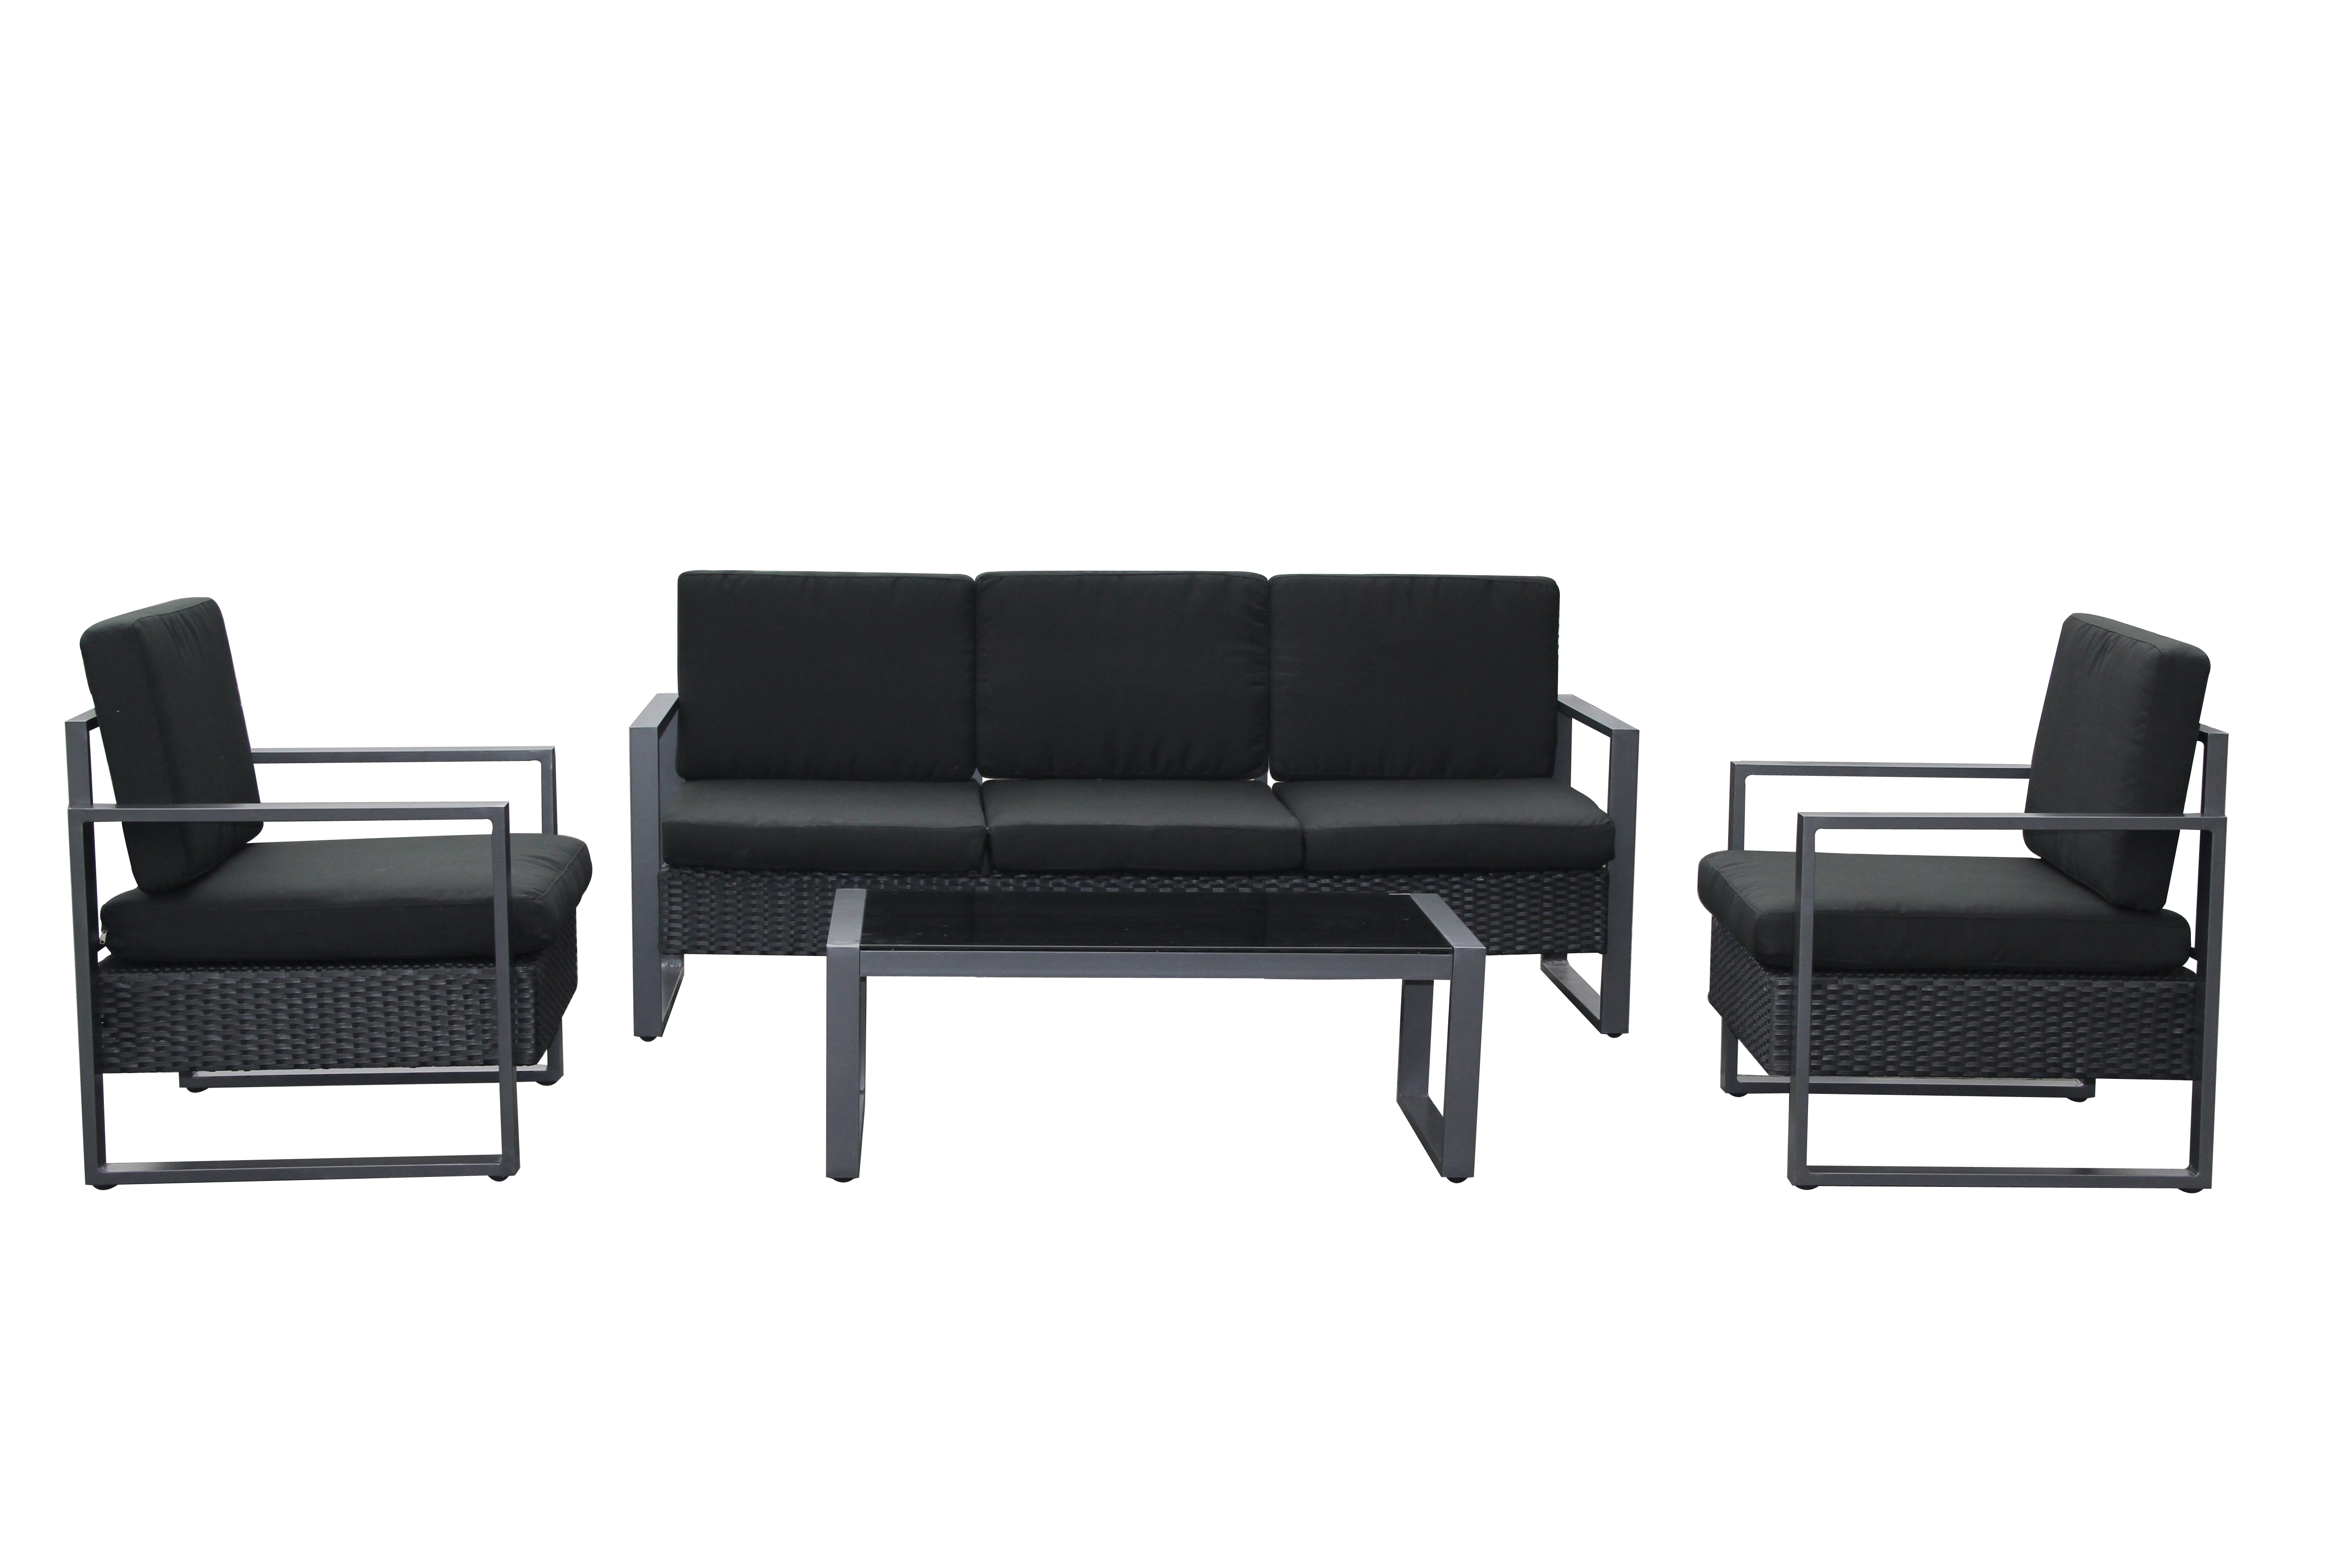 salon de jardin 1 canap r sine et alu noir coussins noir drama. Black Bedroom Furniture Sets. Home Design Ideas